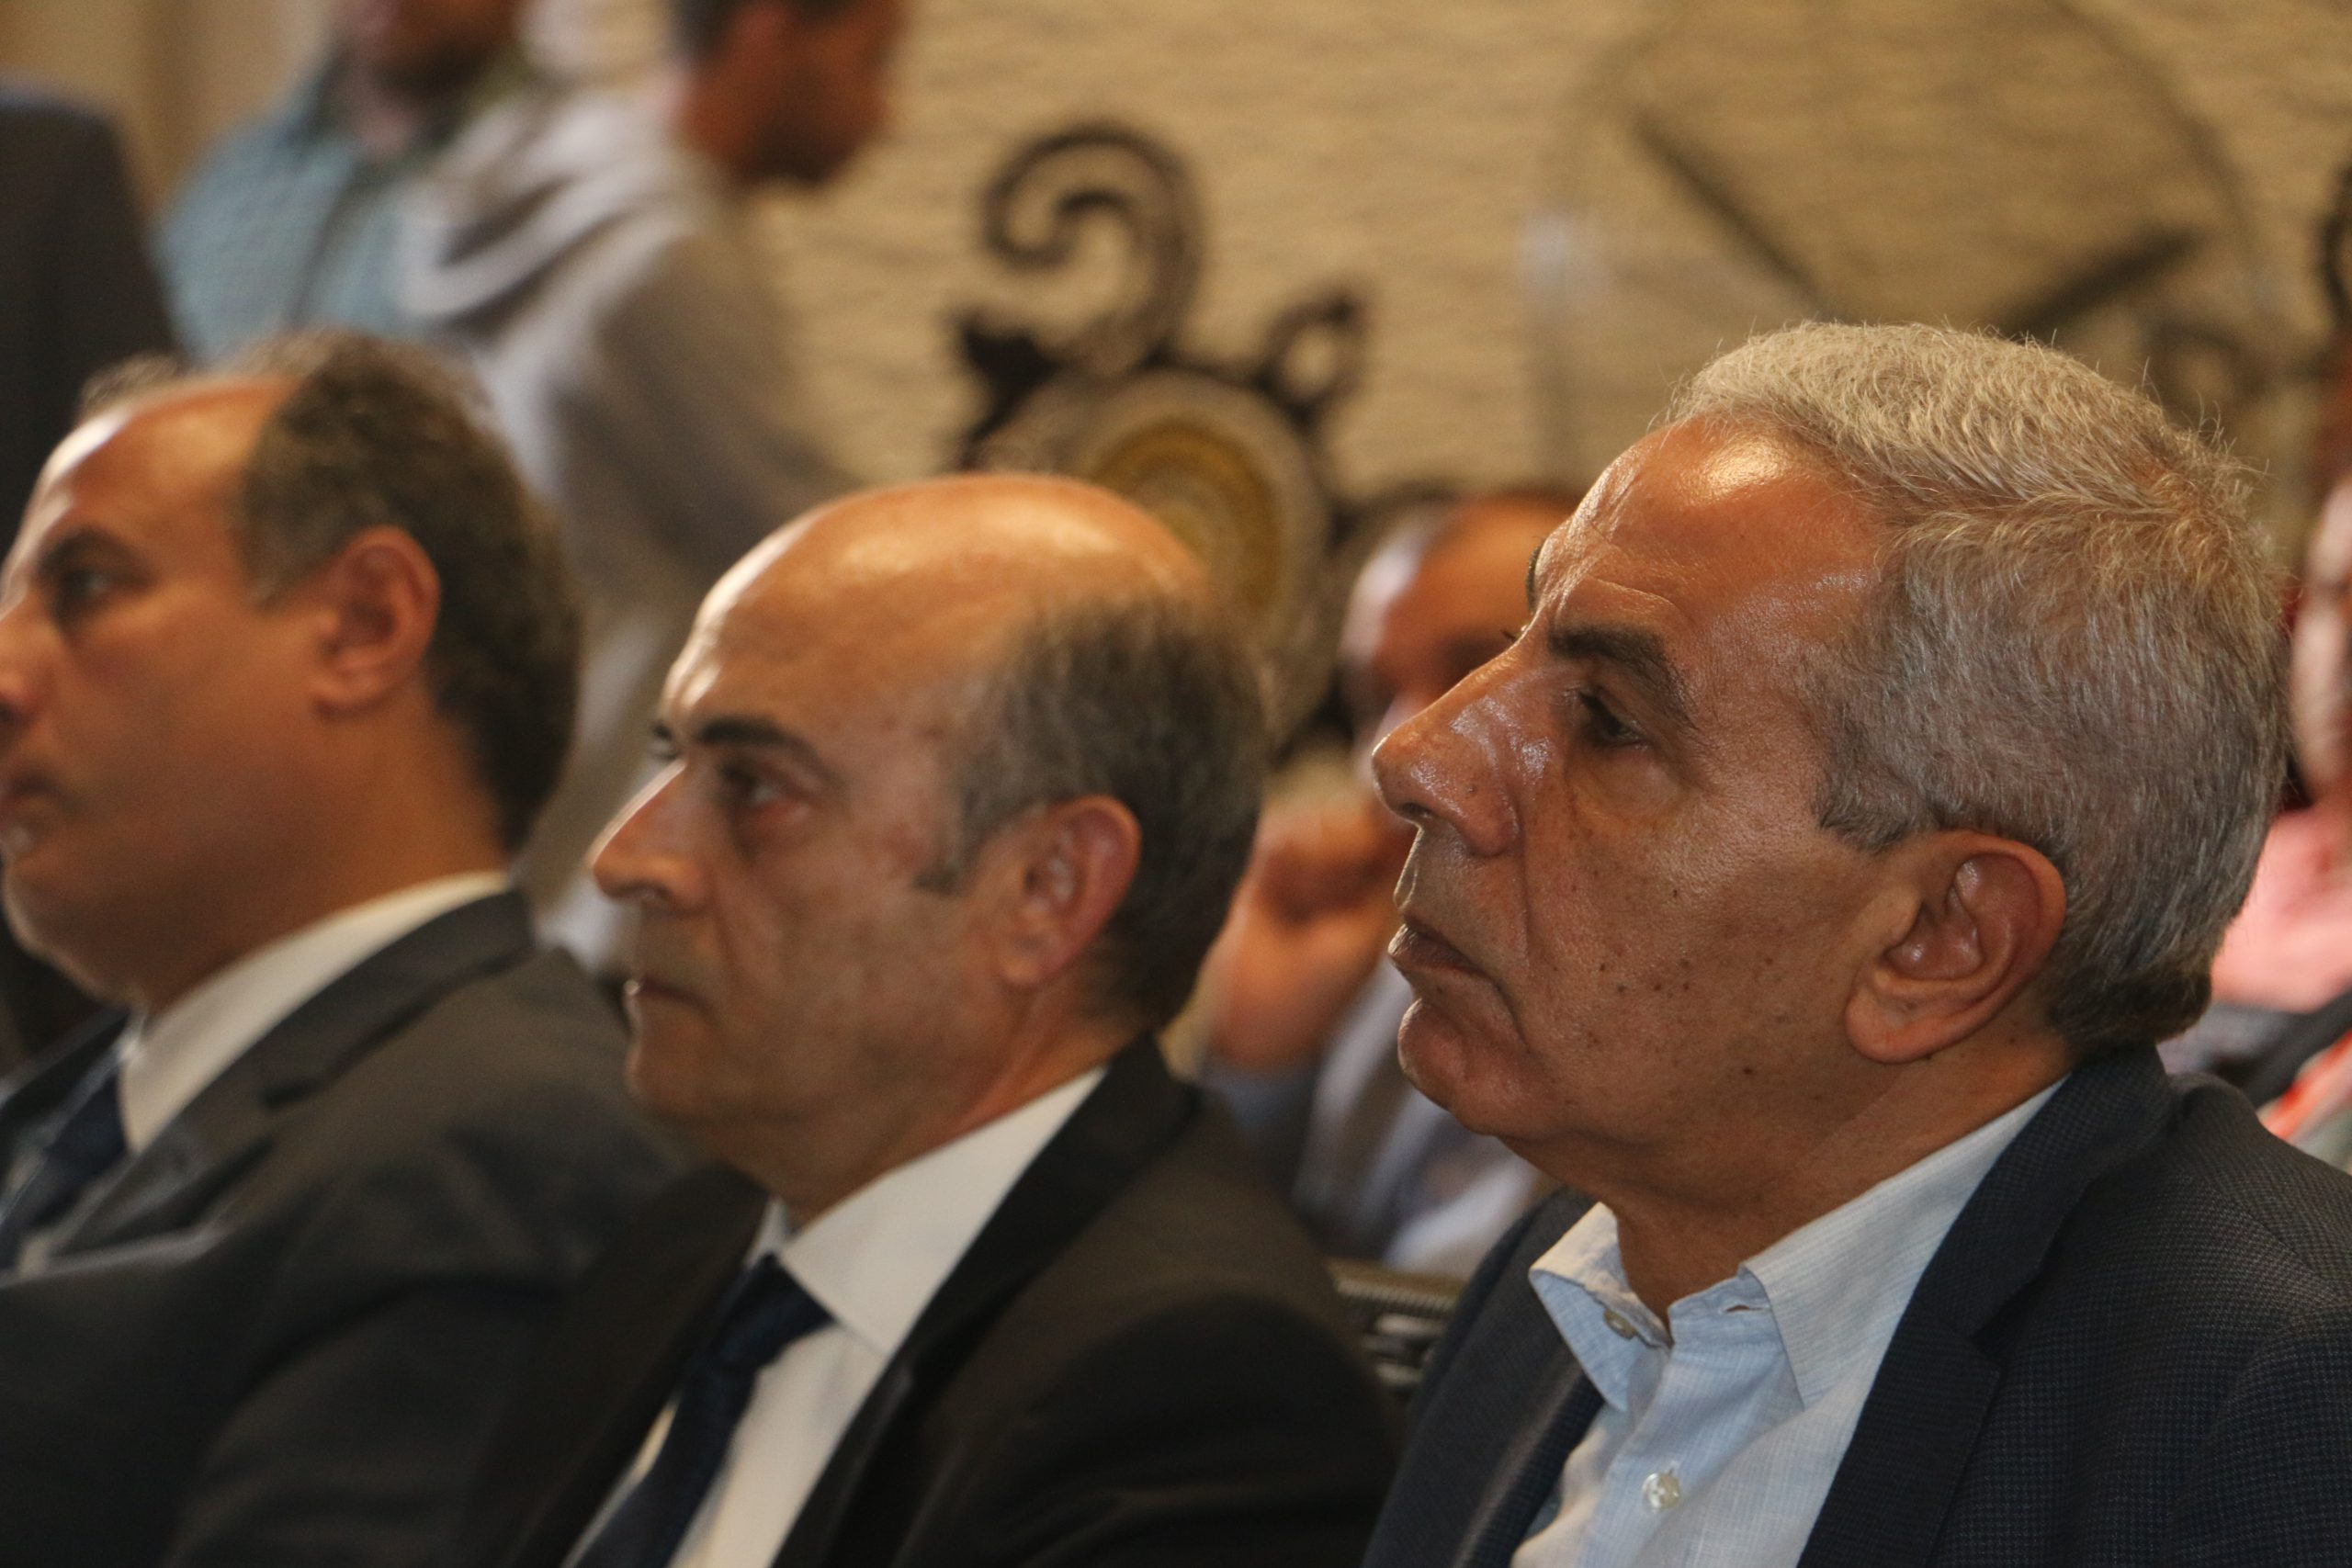 Consulting Arch. Magdy Mukhtar El-Taher and Eng. Tariq Qabil, former Minister of Industry, and Eng. Muhammad Sultan, former Governor of Alexandri